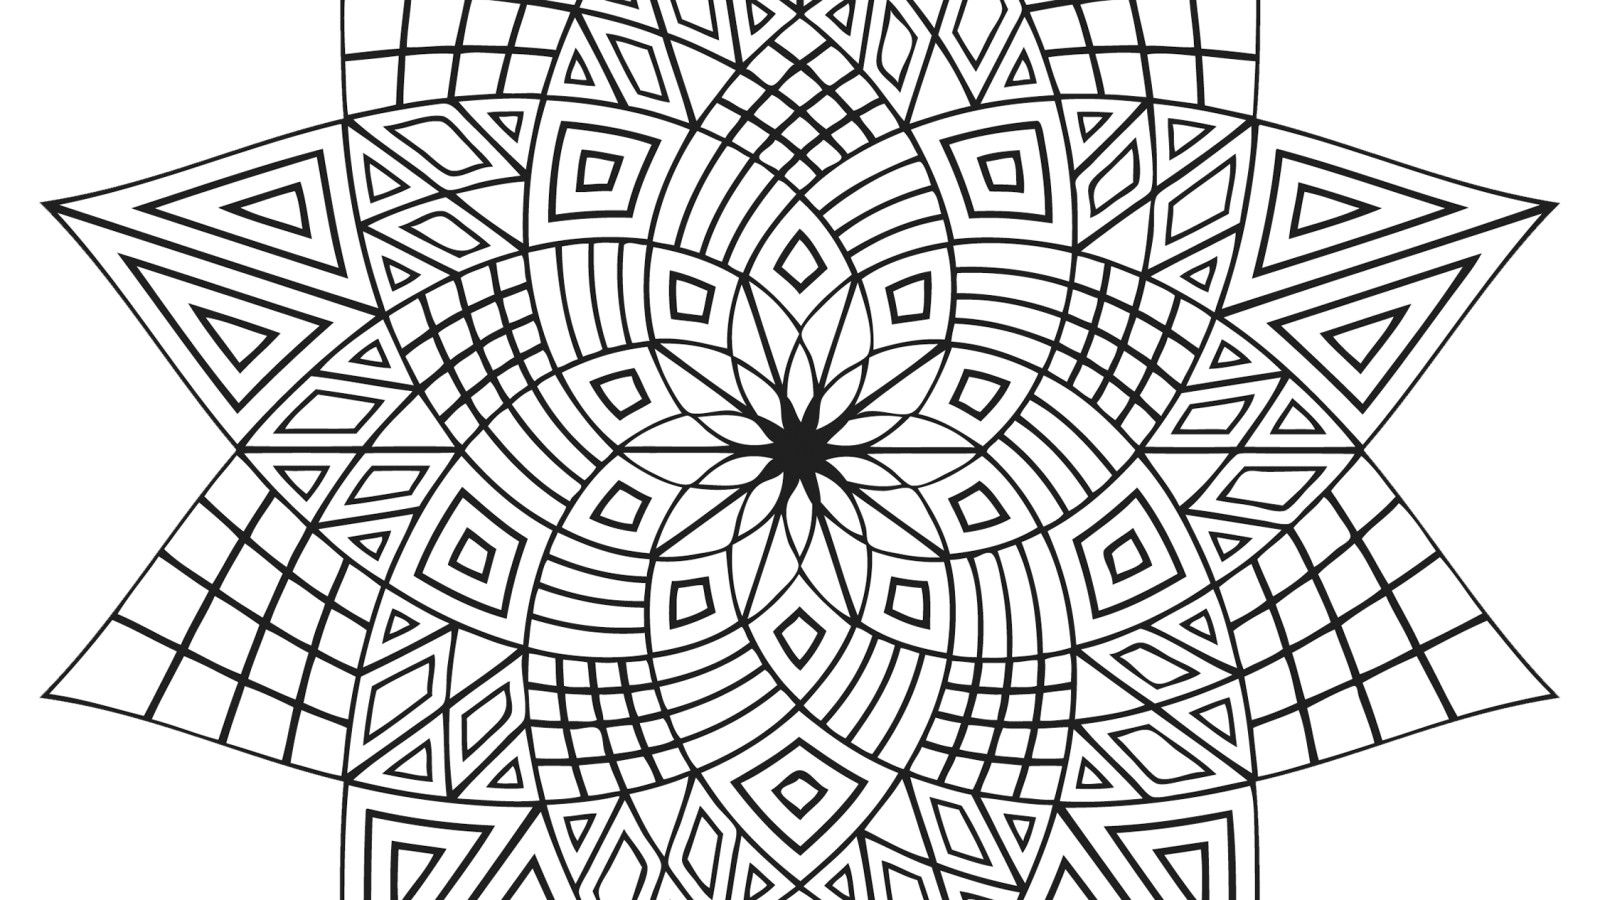 islamic art coloring pages islamic coloring pages 4 coloring kids coloring kids art islamic pages coloring